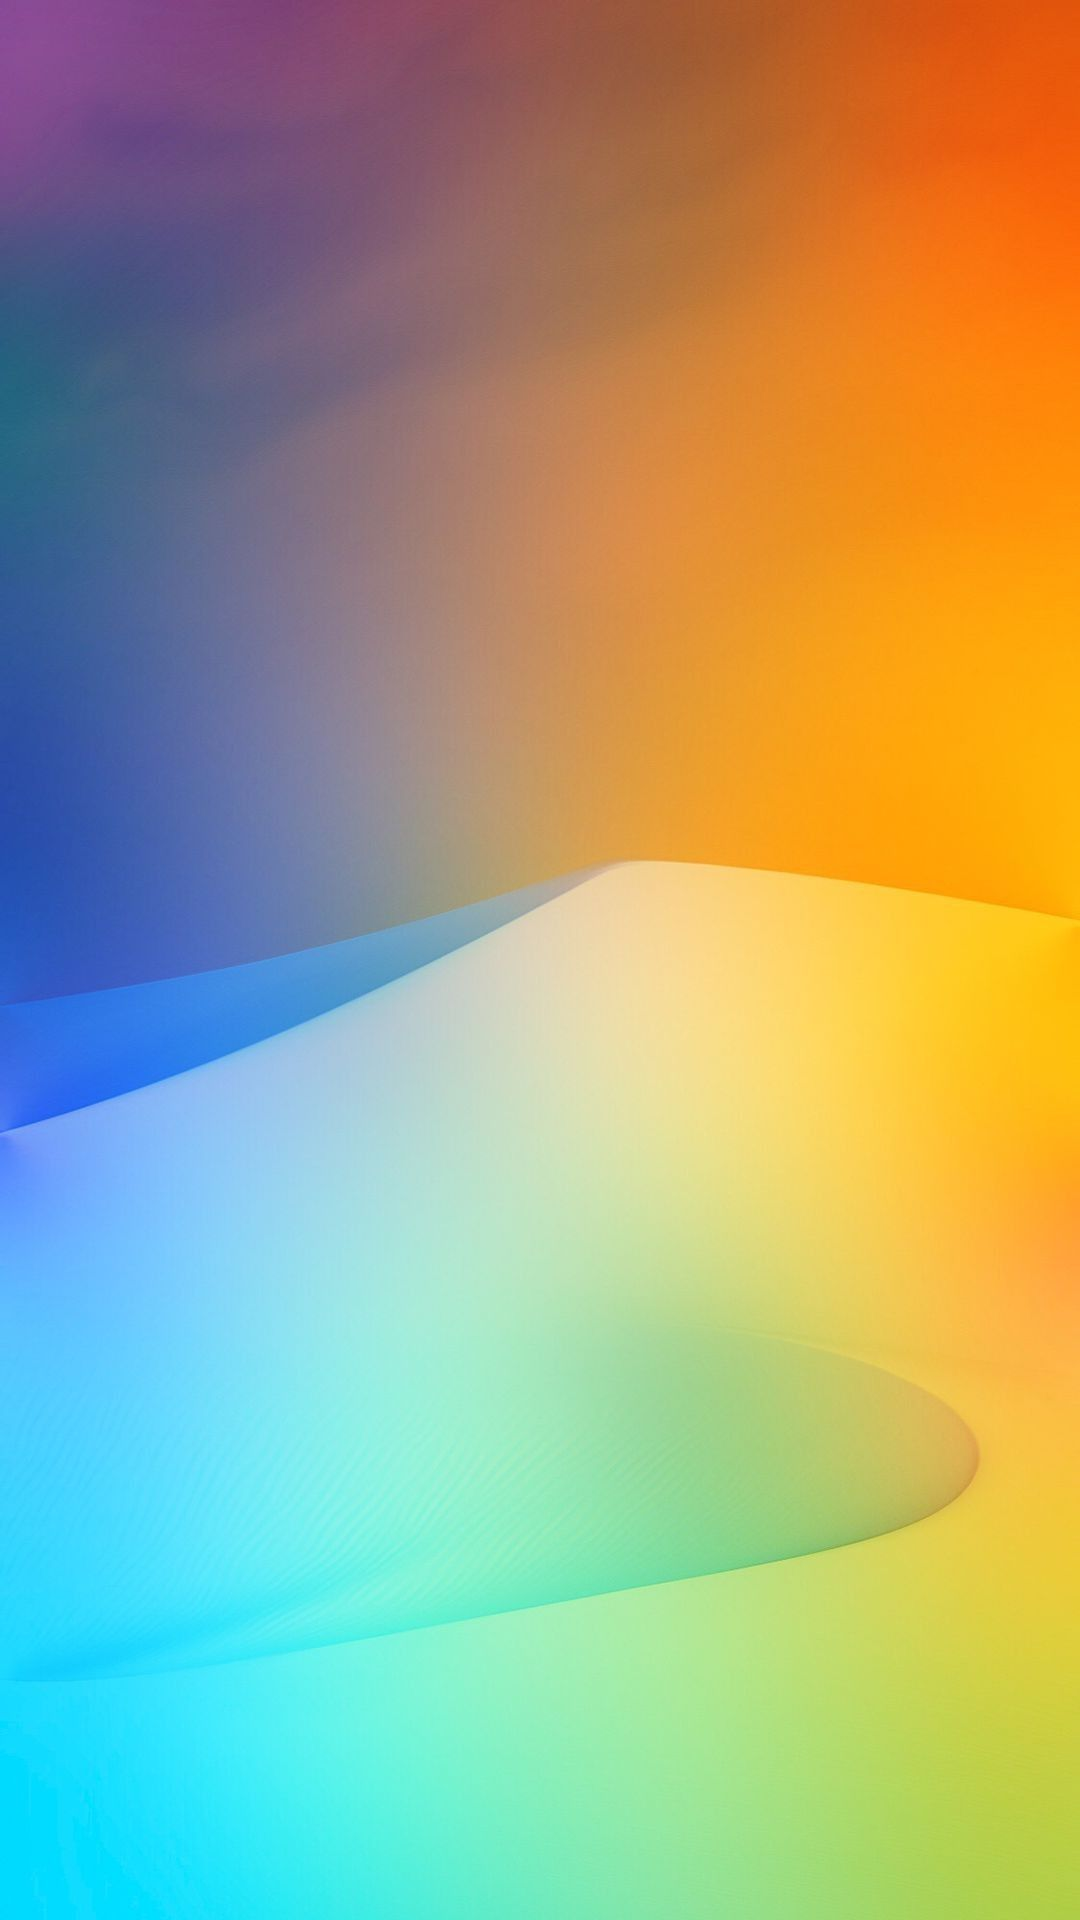 Mojave Gradient Abstract Amoled Liquid Gradient In 2019